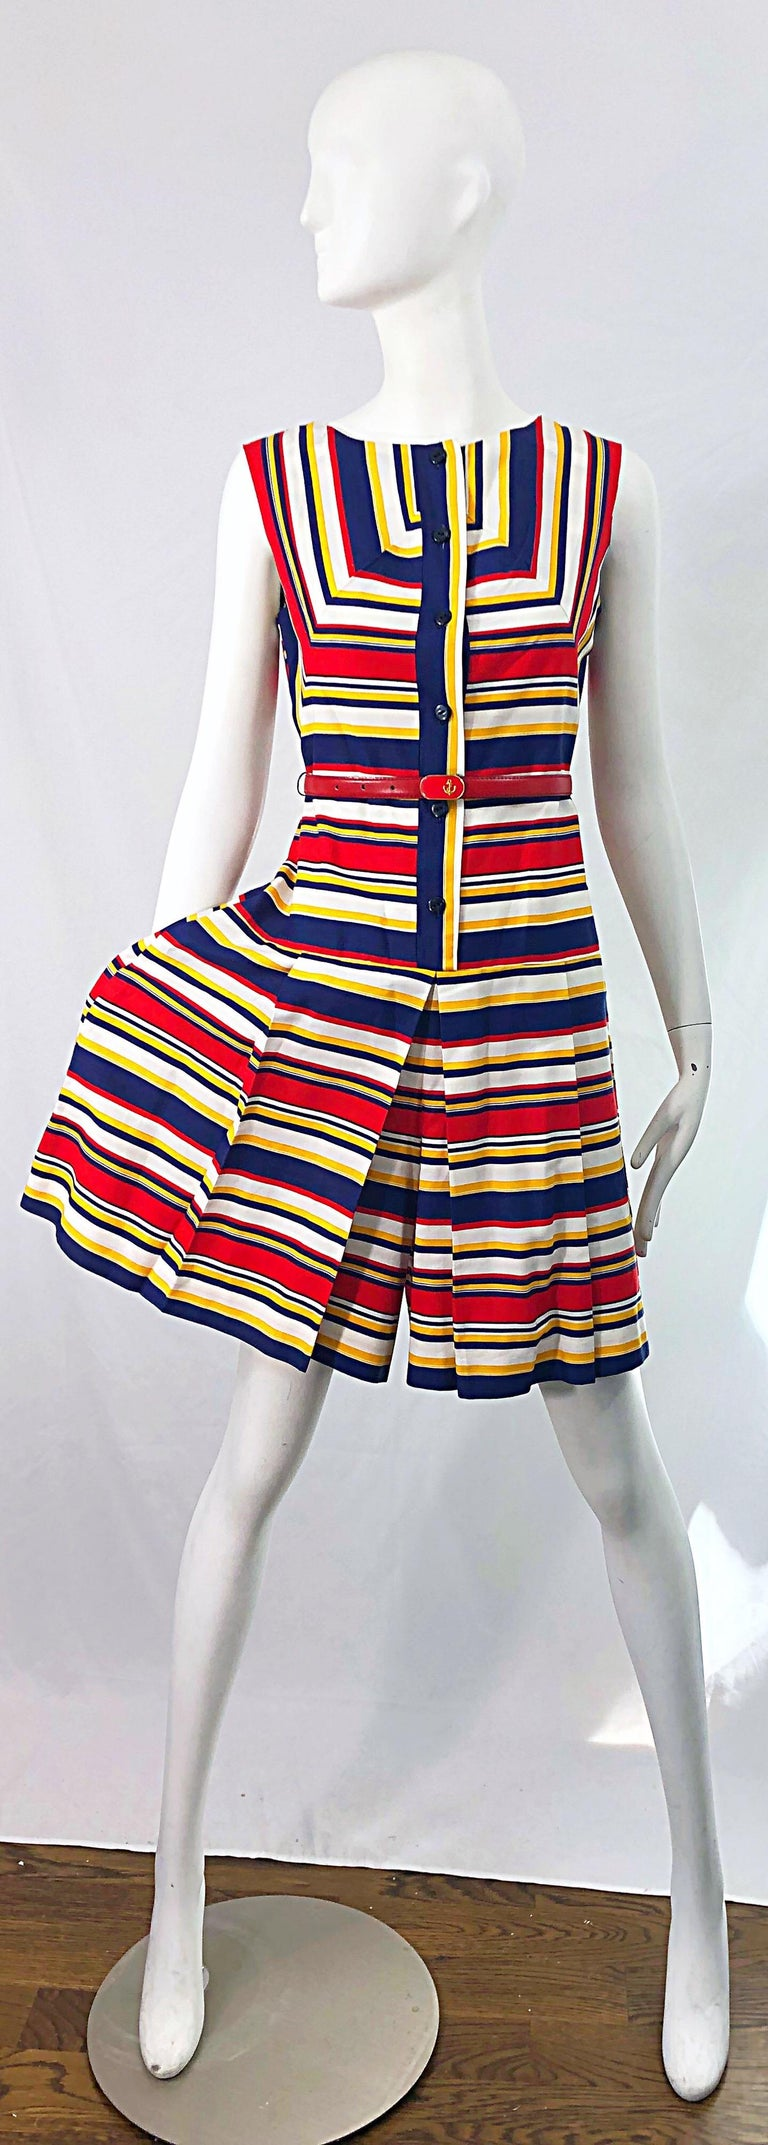 Chic 1960s JOAN CURTIS nautical belted cotton romper ! I thought this was a dress when I initially purchased this, but was pleasantly surprised when I went to photograph it, and realized that it was a romper! Features navy blue, red, yellow and